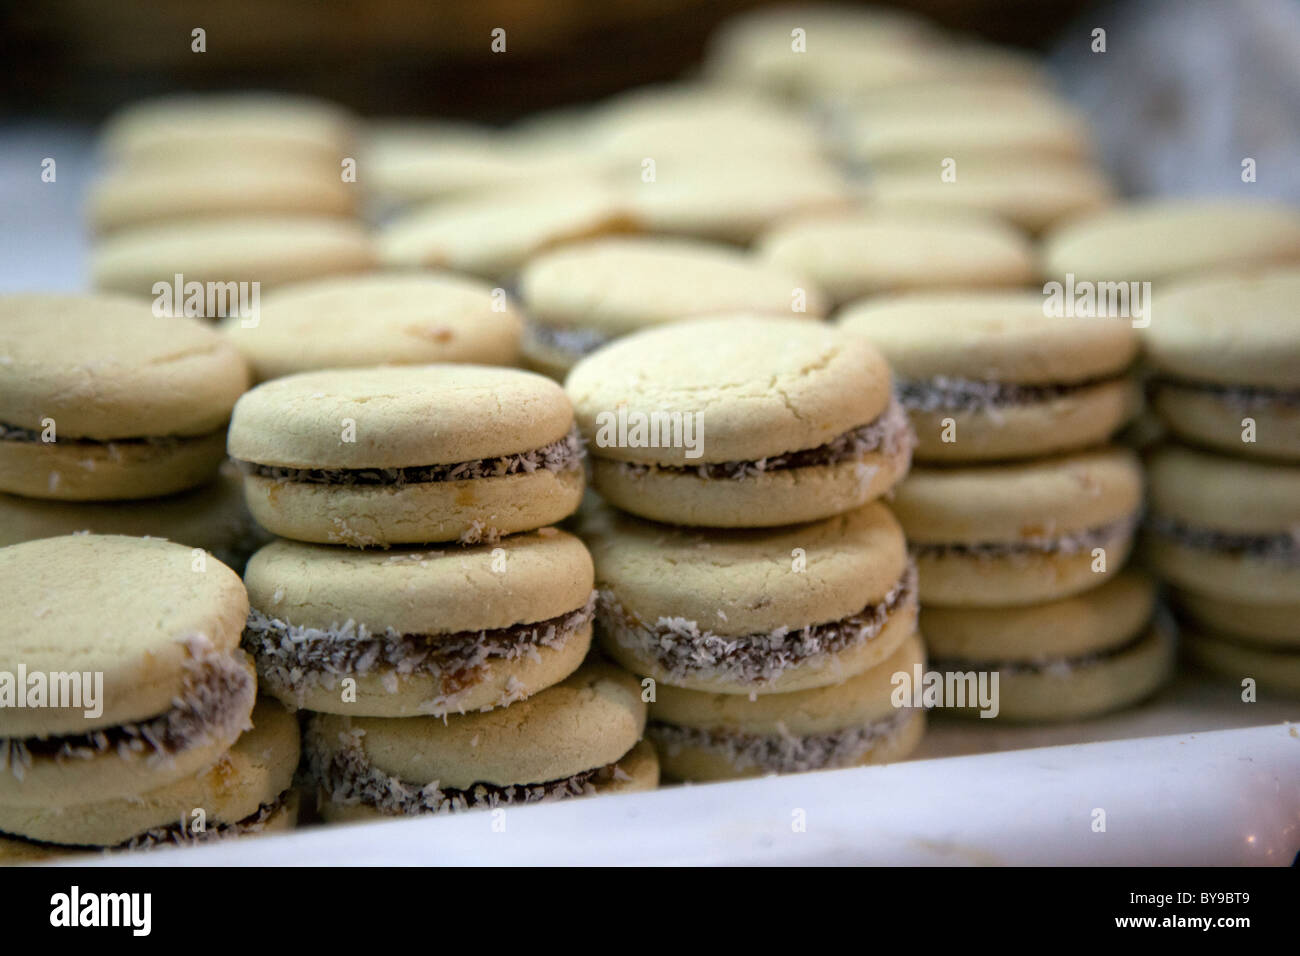 Alfajores, traditional Argentine cookie filled with dulce de leche, as seen in a Buenos Aires bakery. - Stock Image